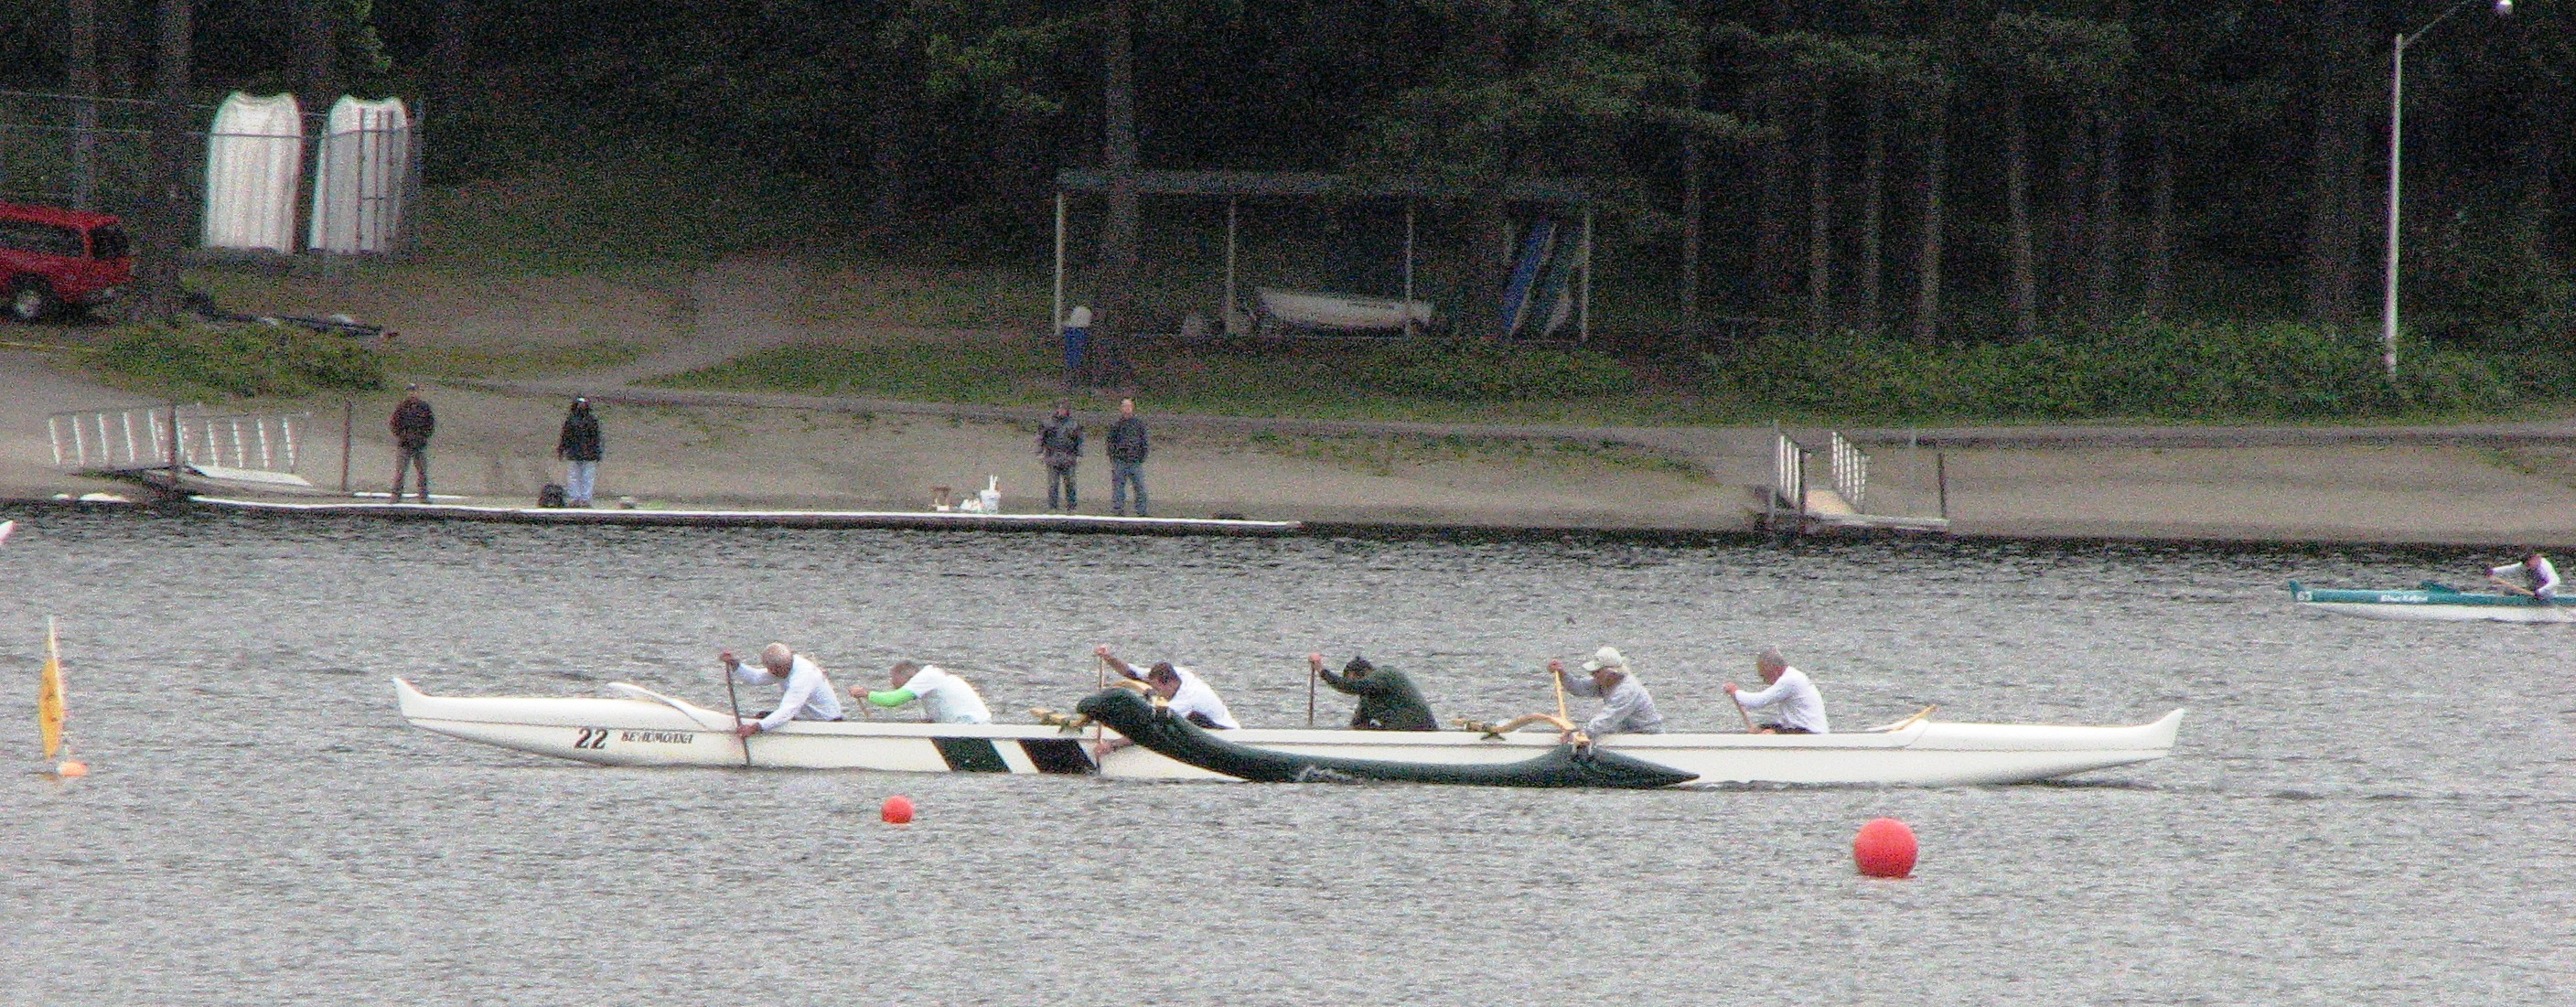 Outrigger Canoe Races on Everett's Silver Lake Today From 10am ? 2pm